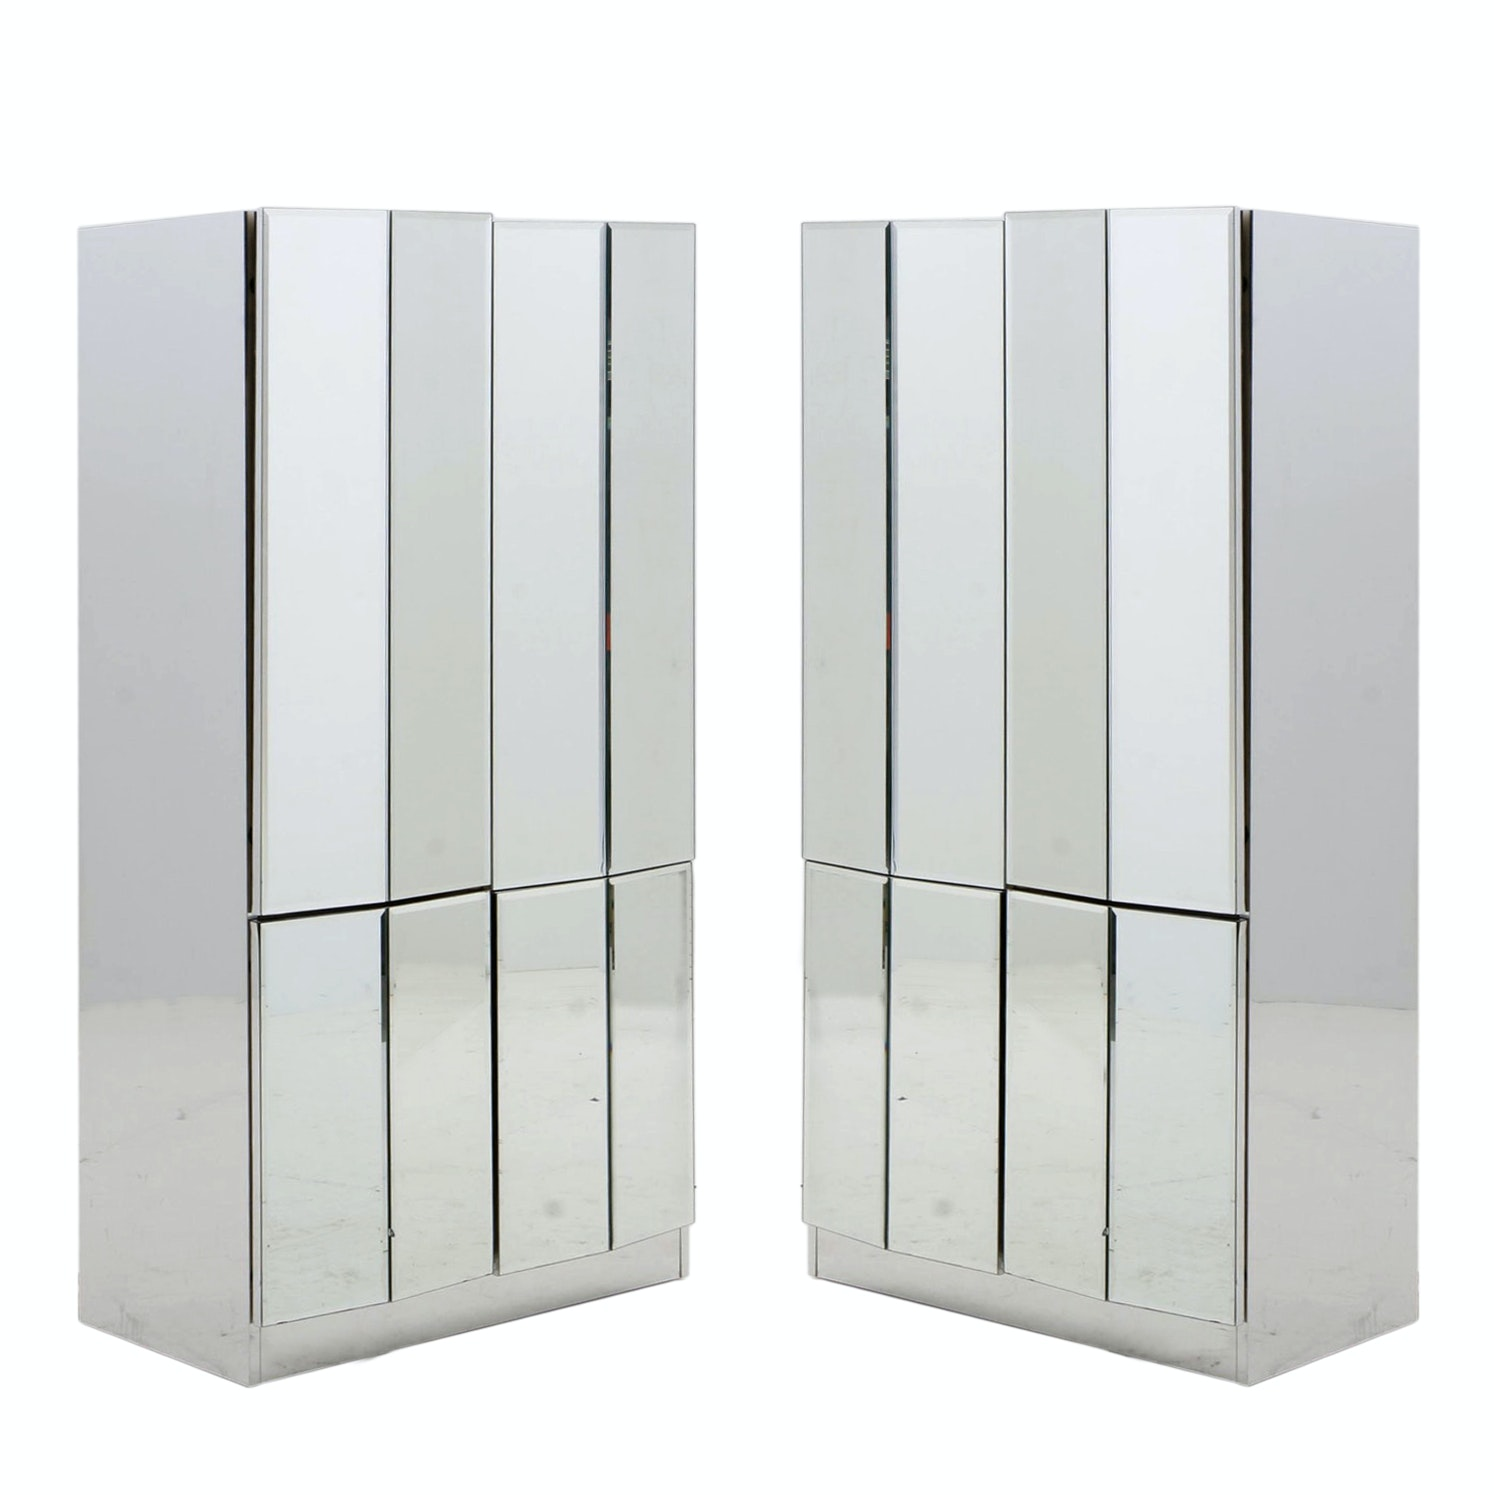 Pair of Mirrored Cabinets